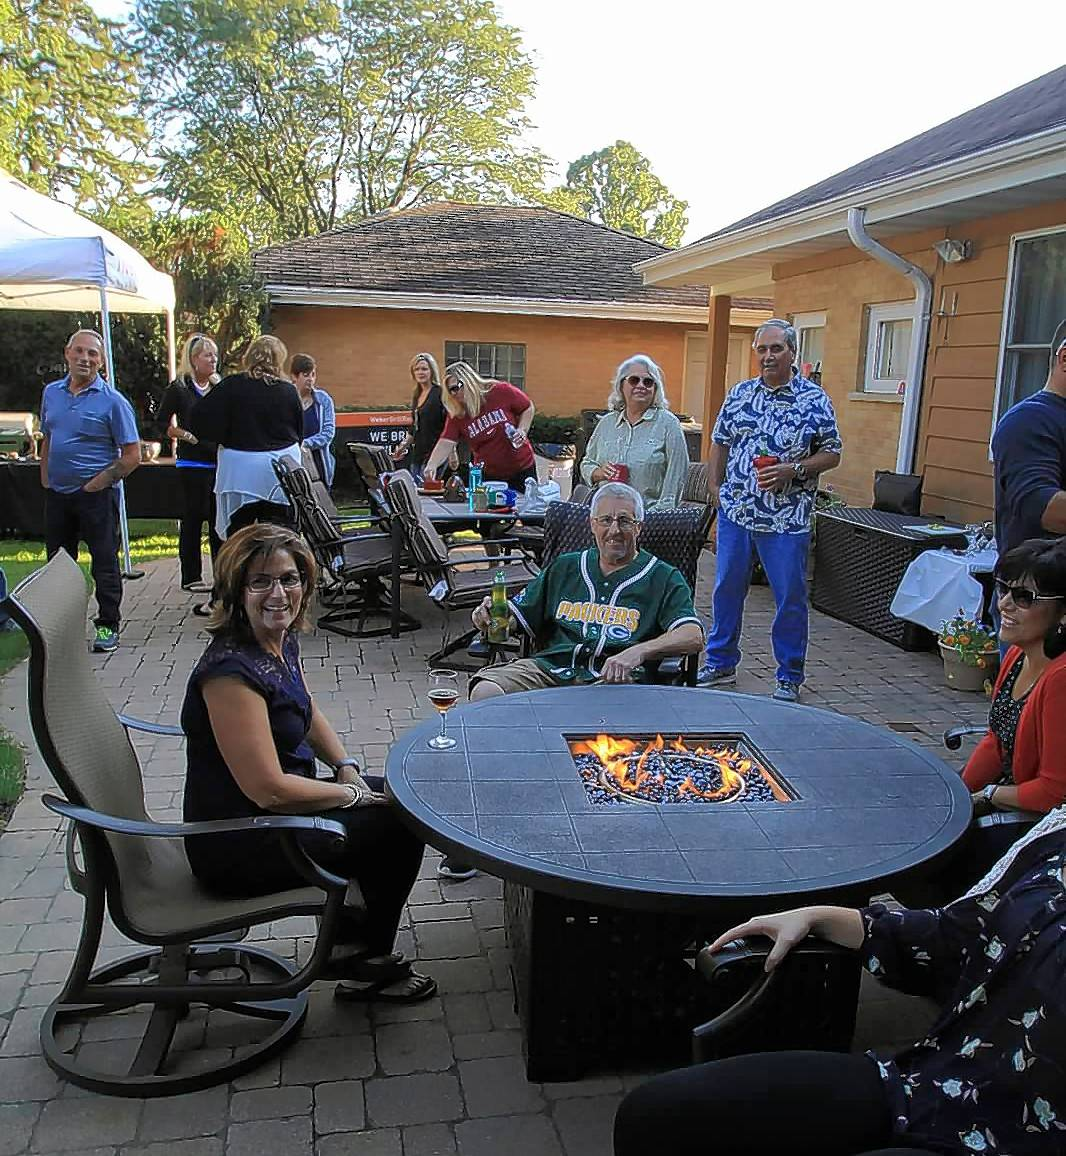 A Rolling Meadows family enjoys a catered, Weber On Wheels party in their backyard. The family won a previous Get Your Summer On promotion.